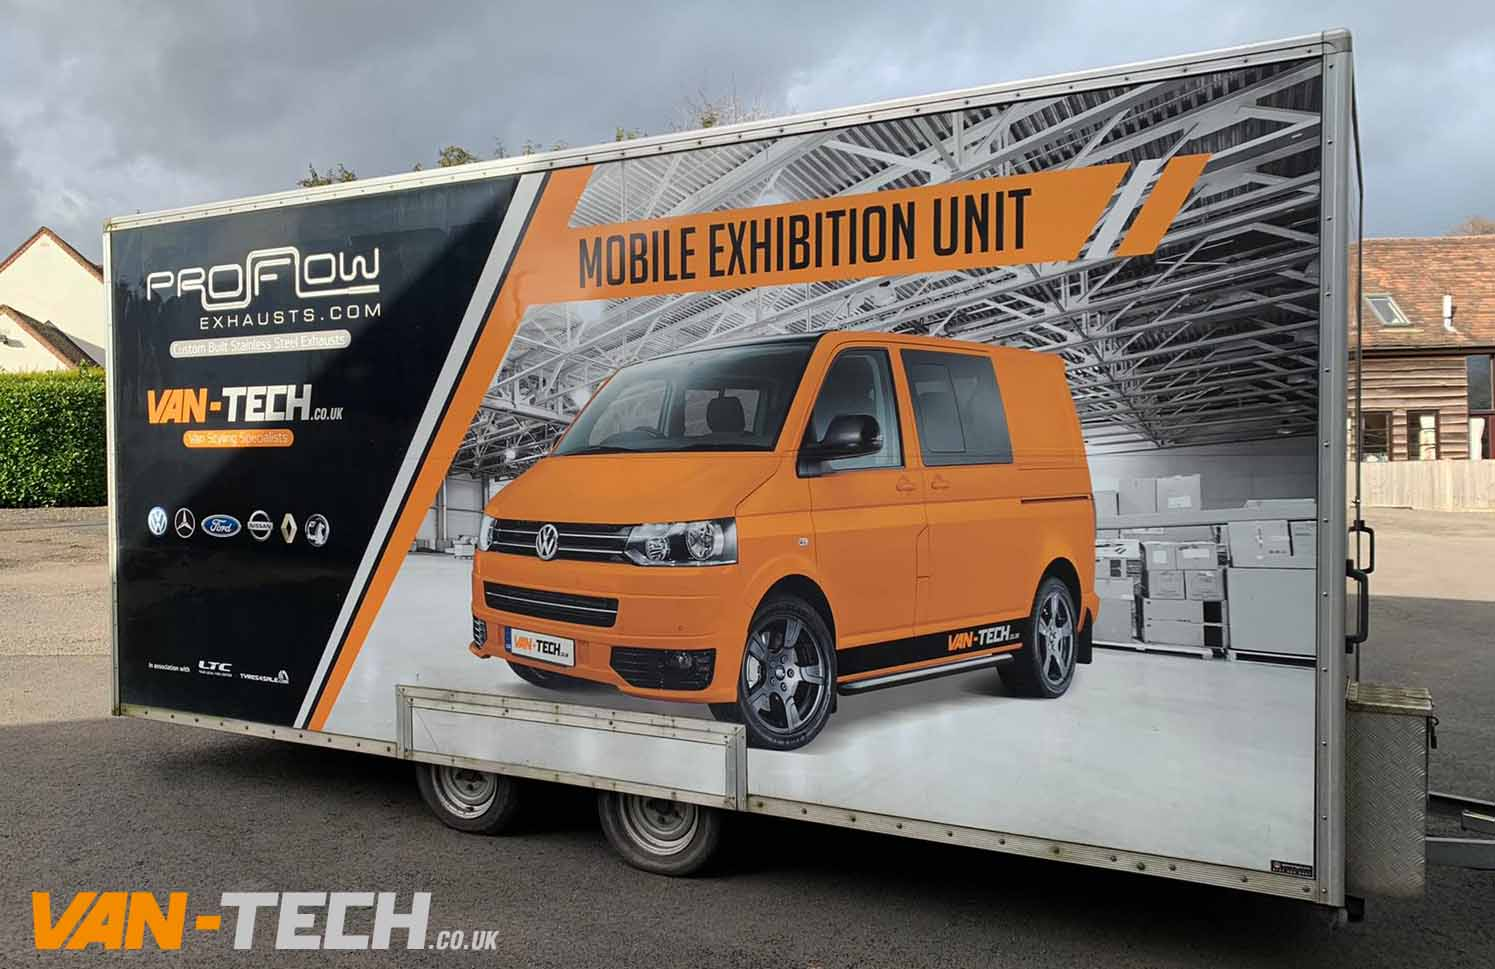 Van-Tech would like to thank everyone who attended Camper Mart 2020 at the Telford International Centre